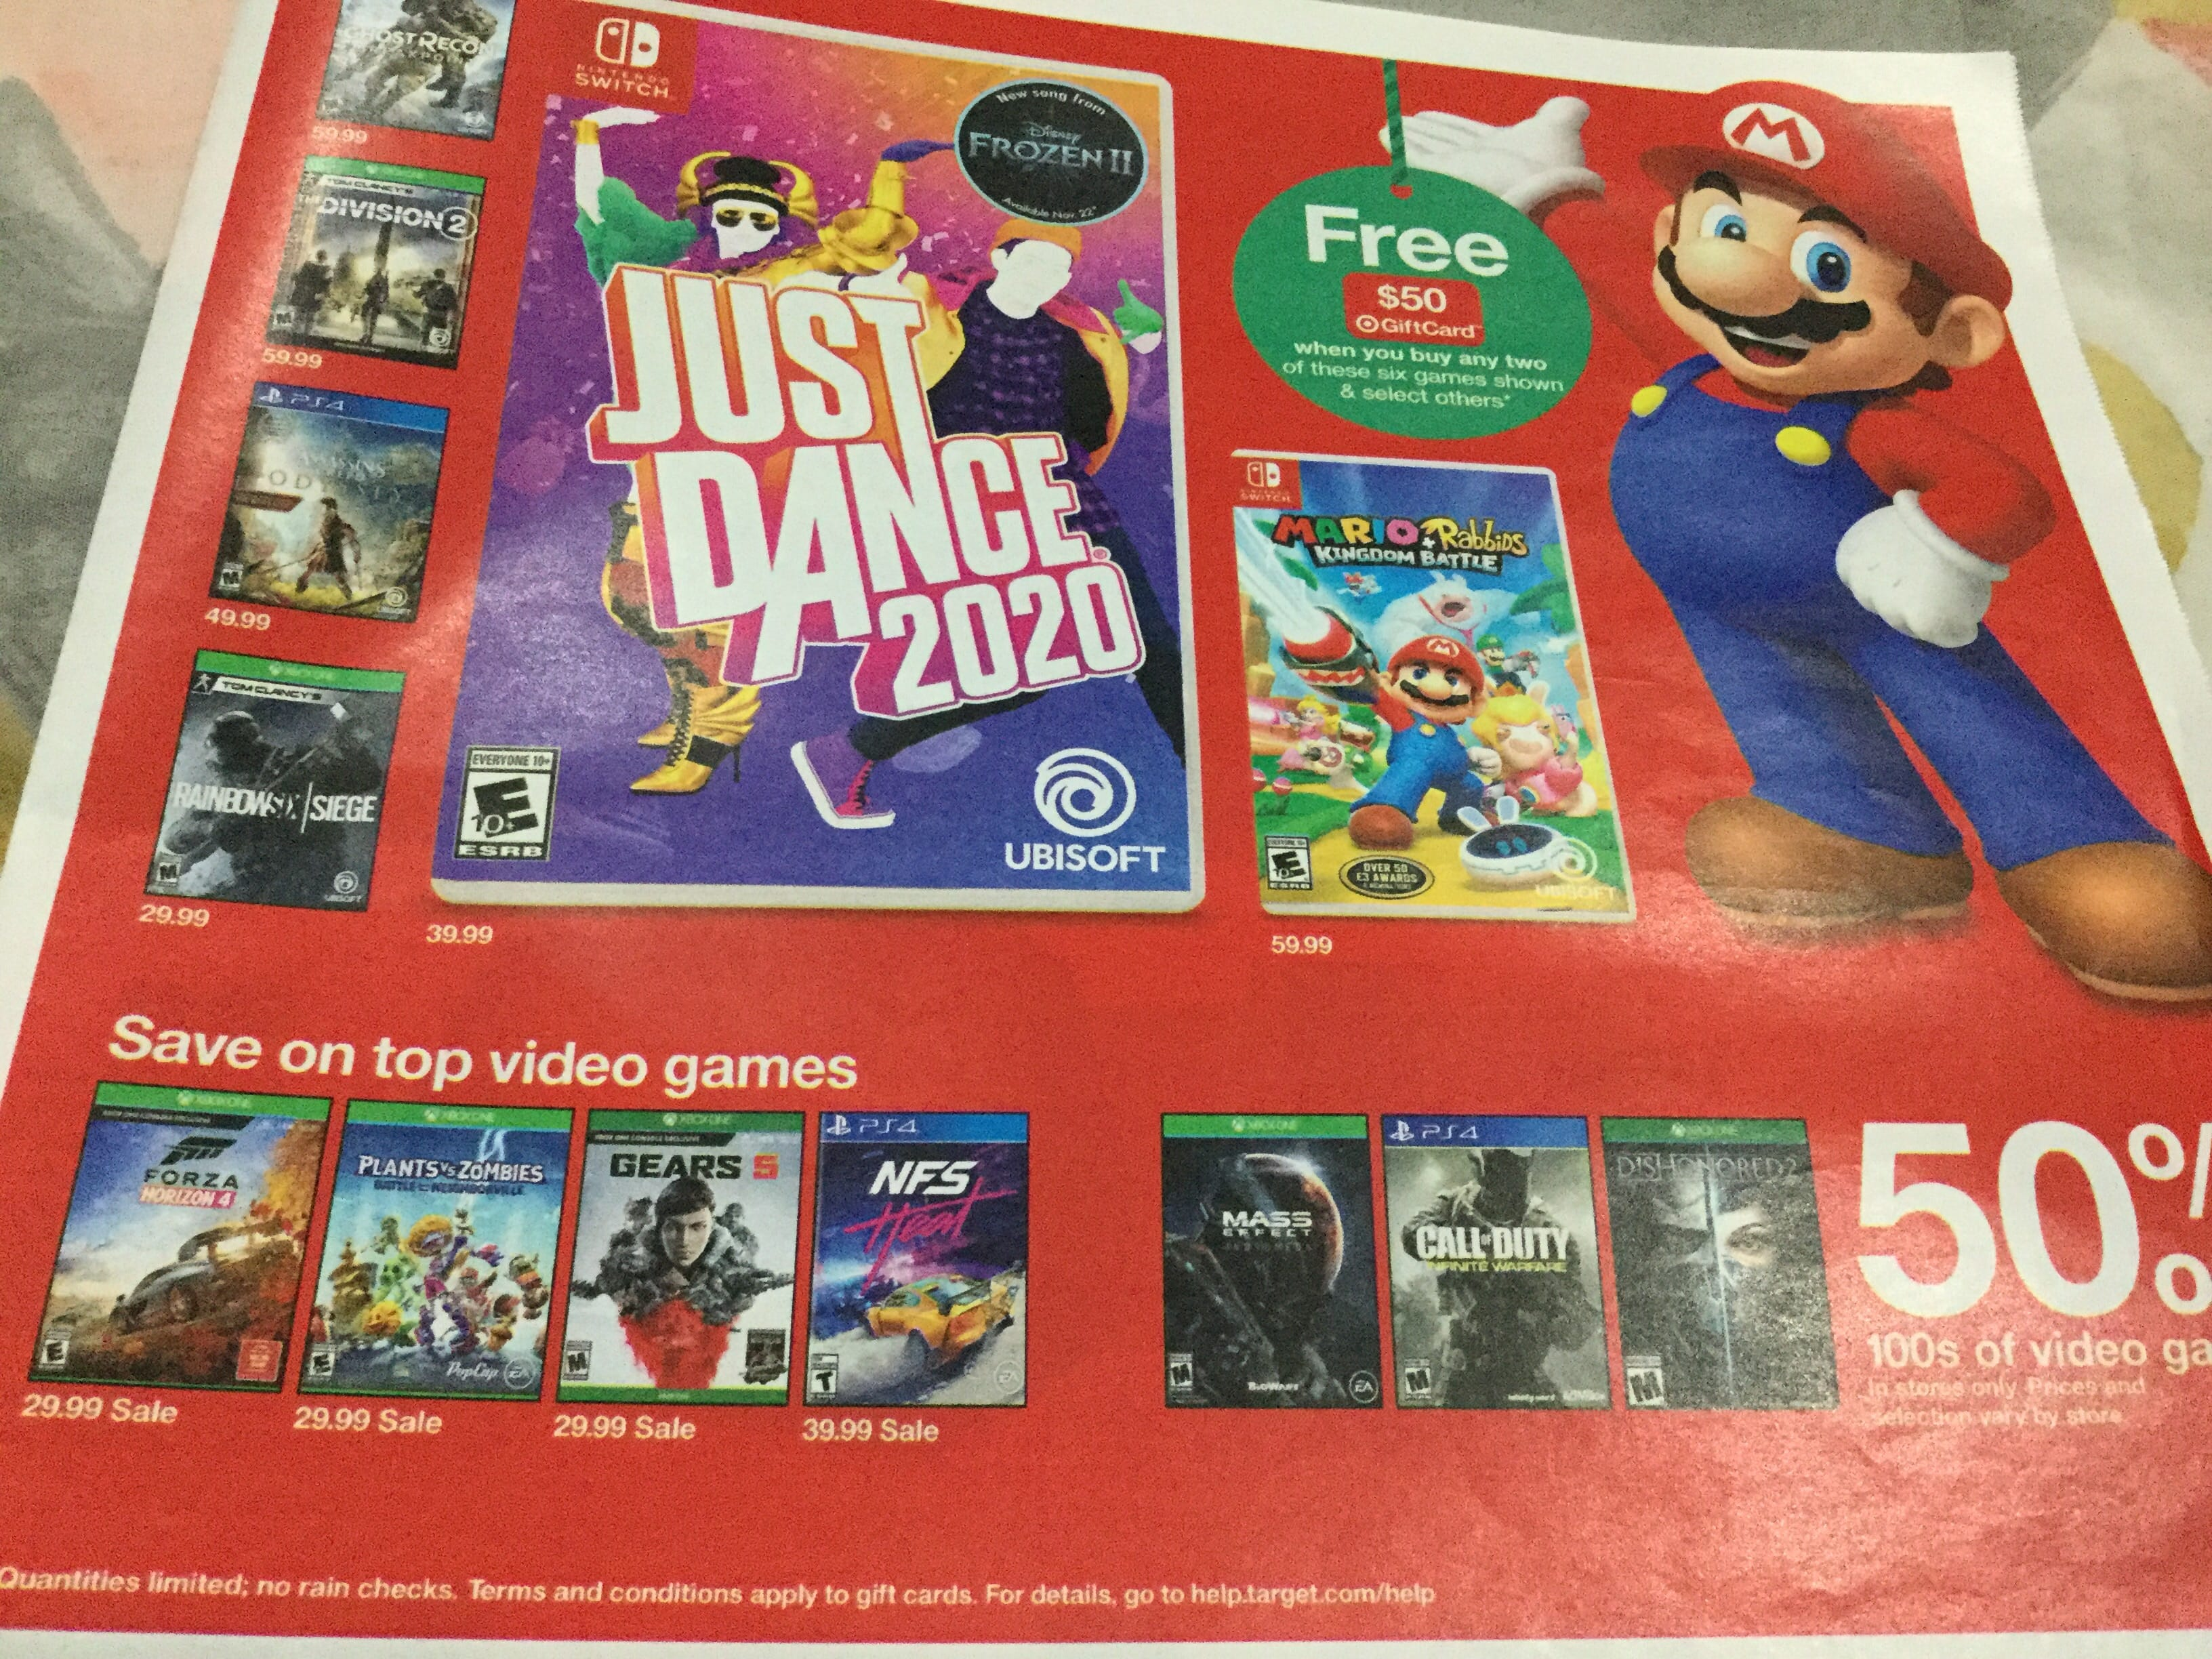 FREE $ 50 Target GiftCard when you buy any 2 select games plus 50% off on 100's of video games @ Target - Dec 8 thru Dec 14